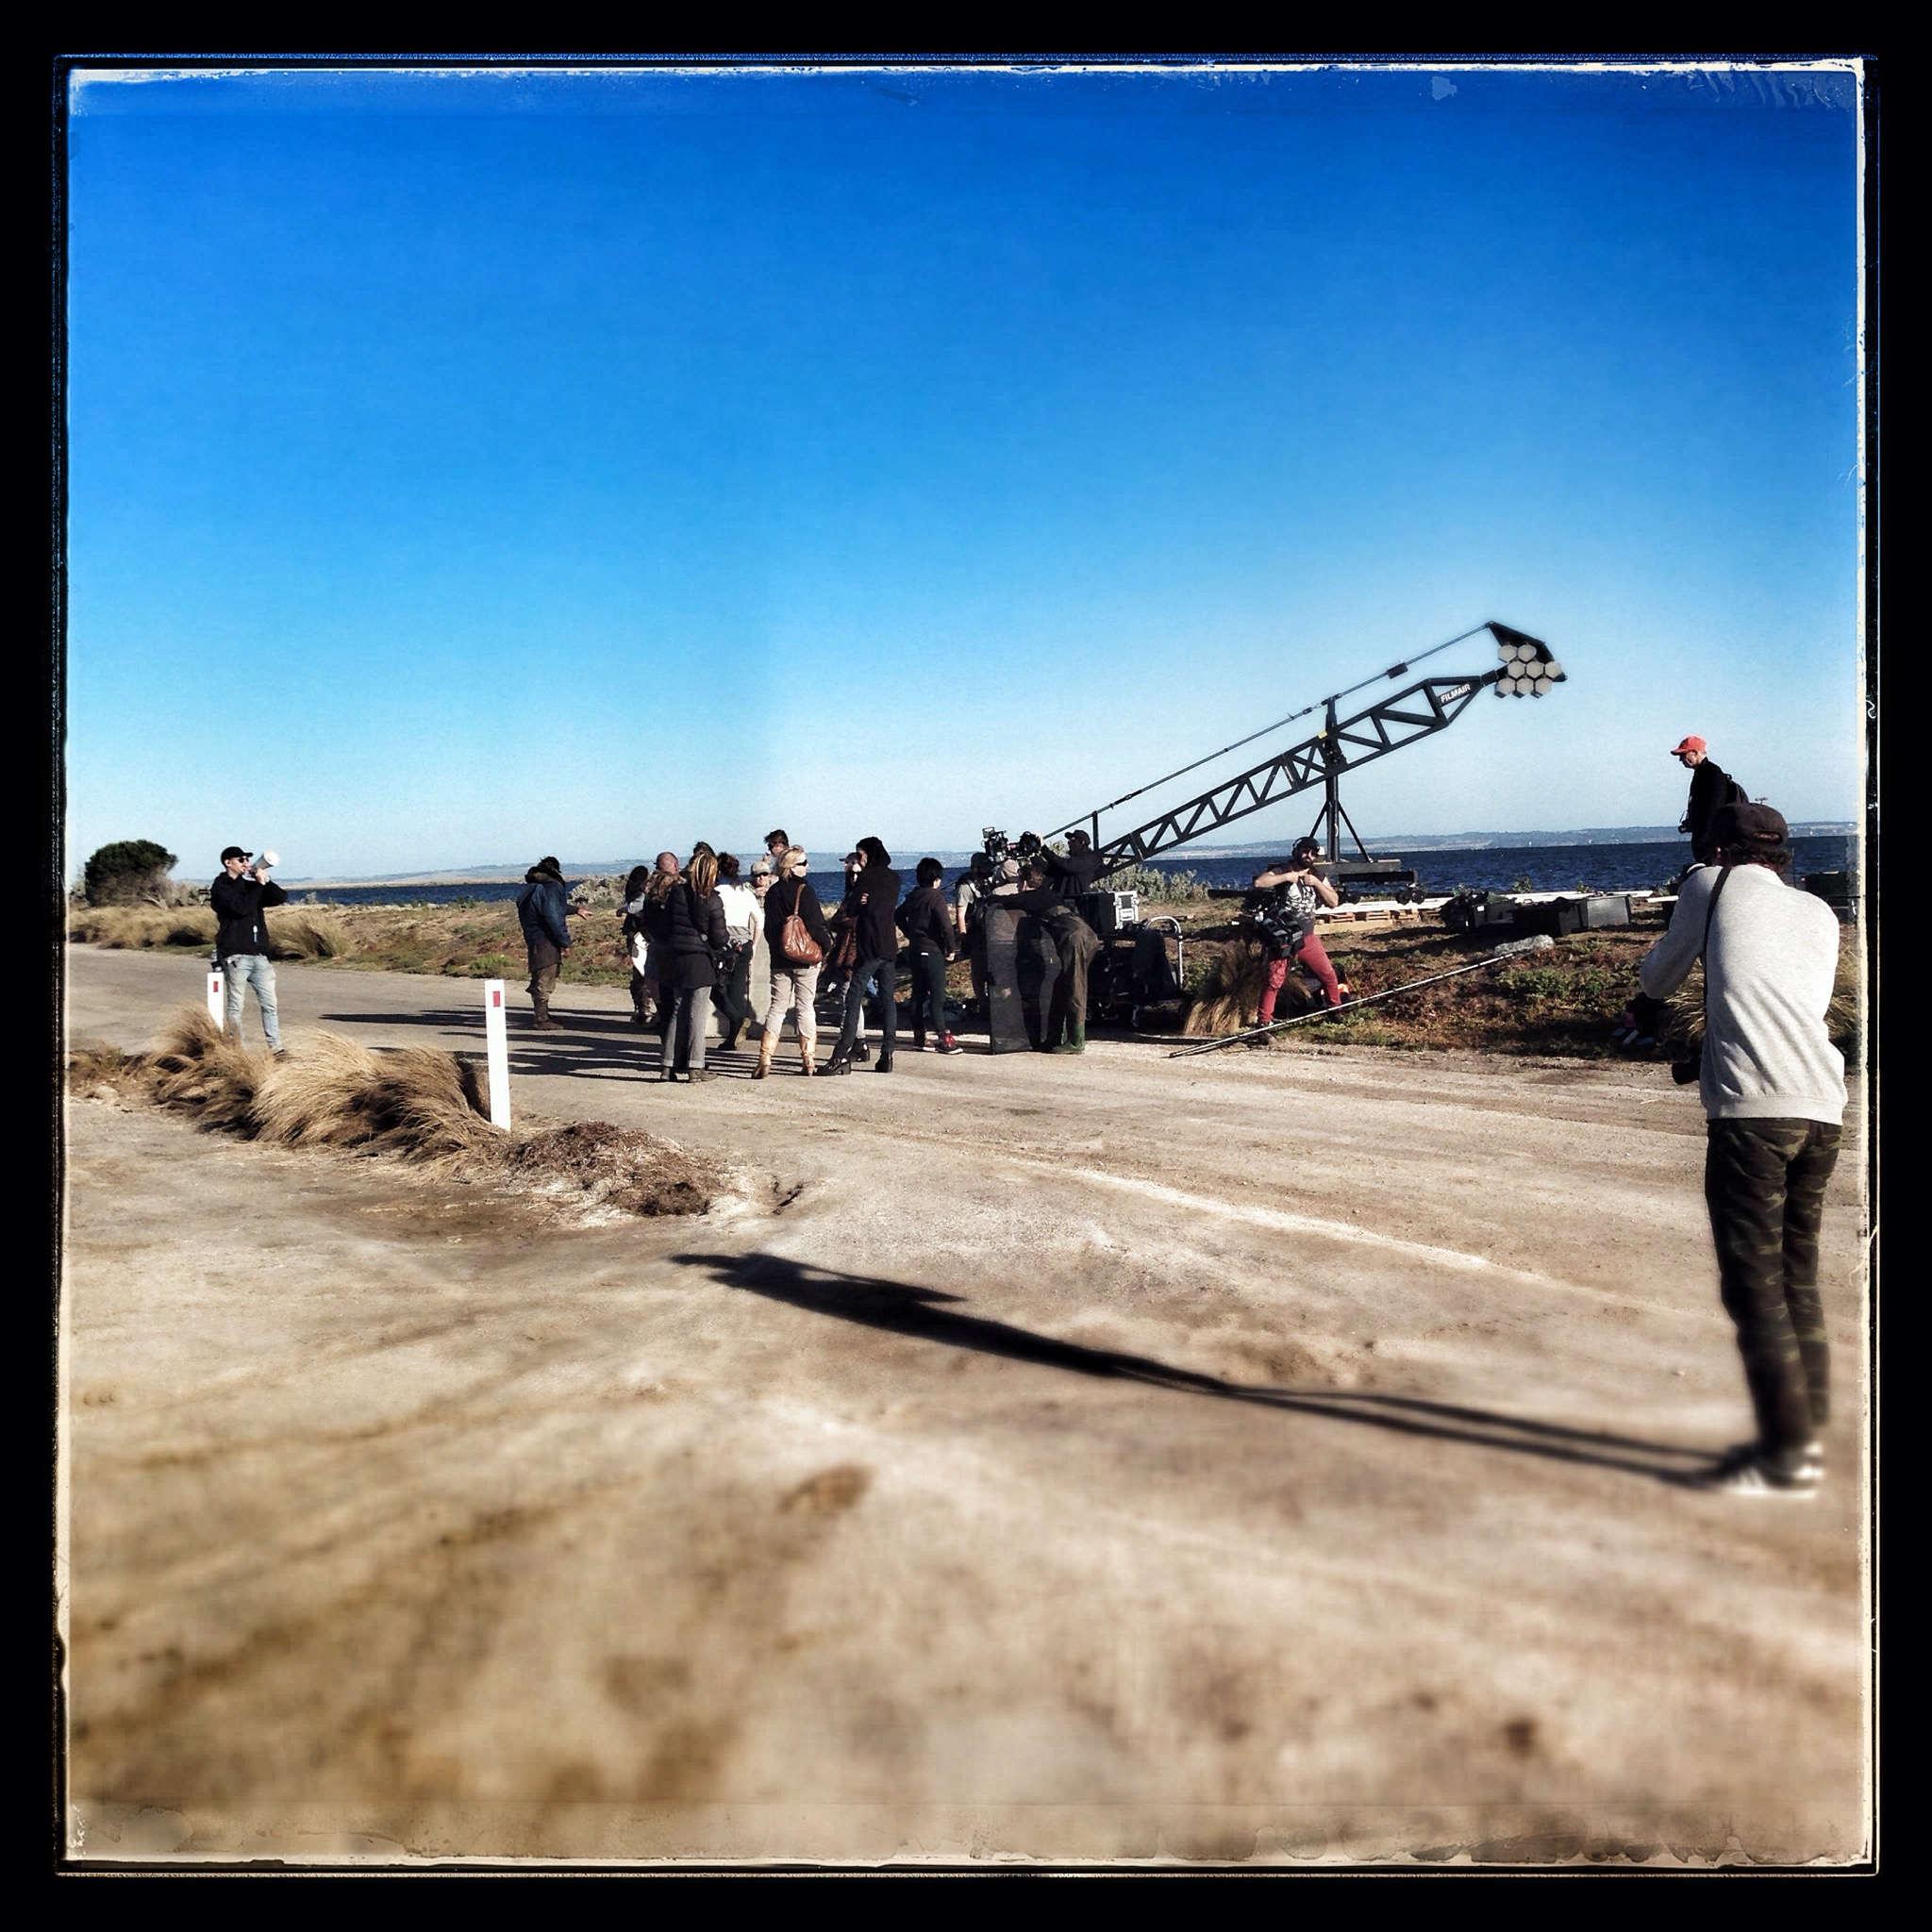 Day 1314. Sunday on Set